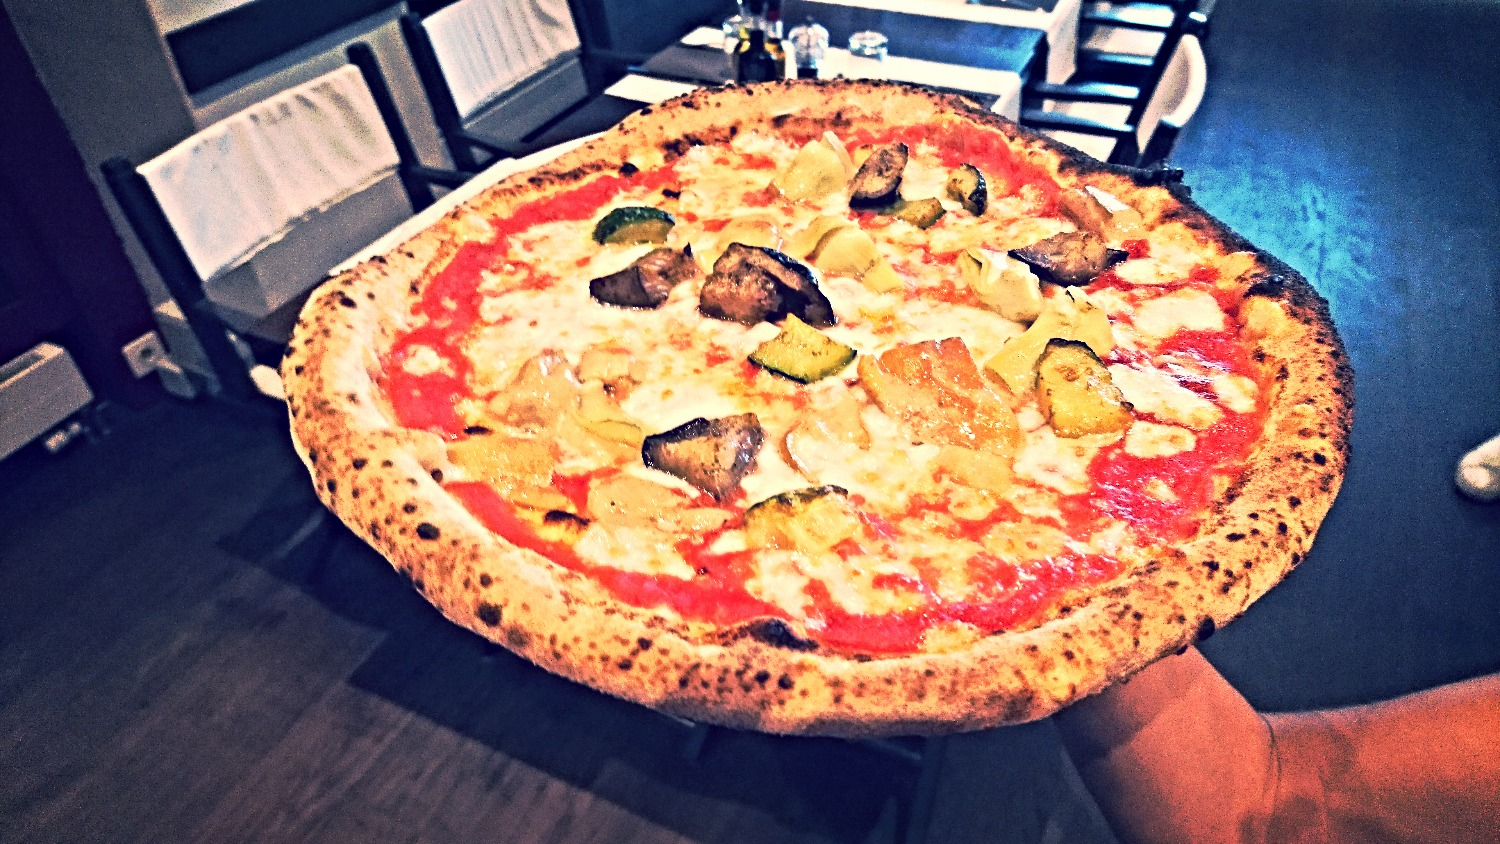 restaurant cinecitta pizza 2